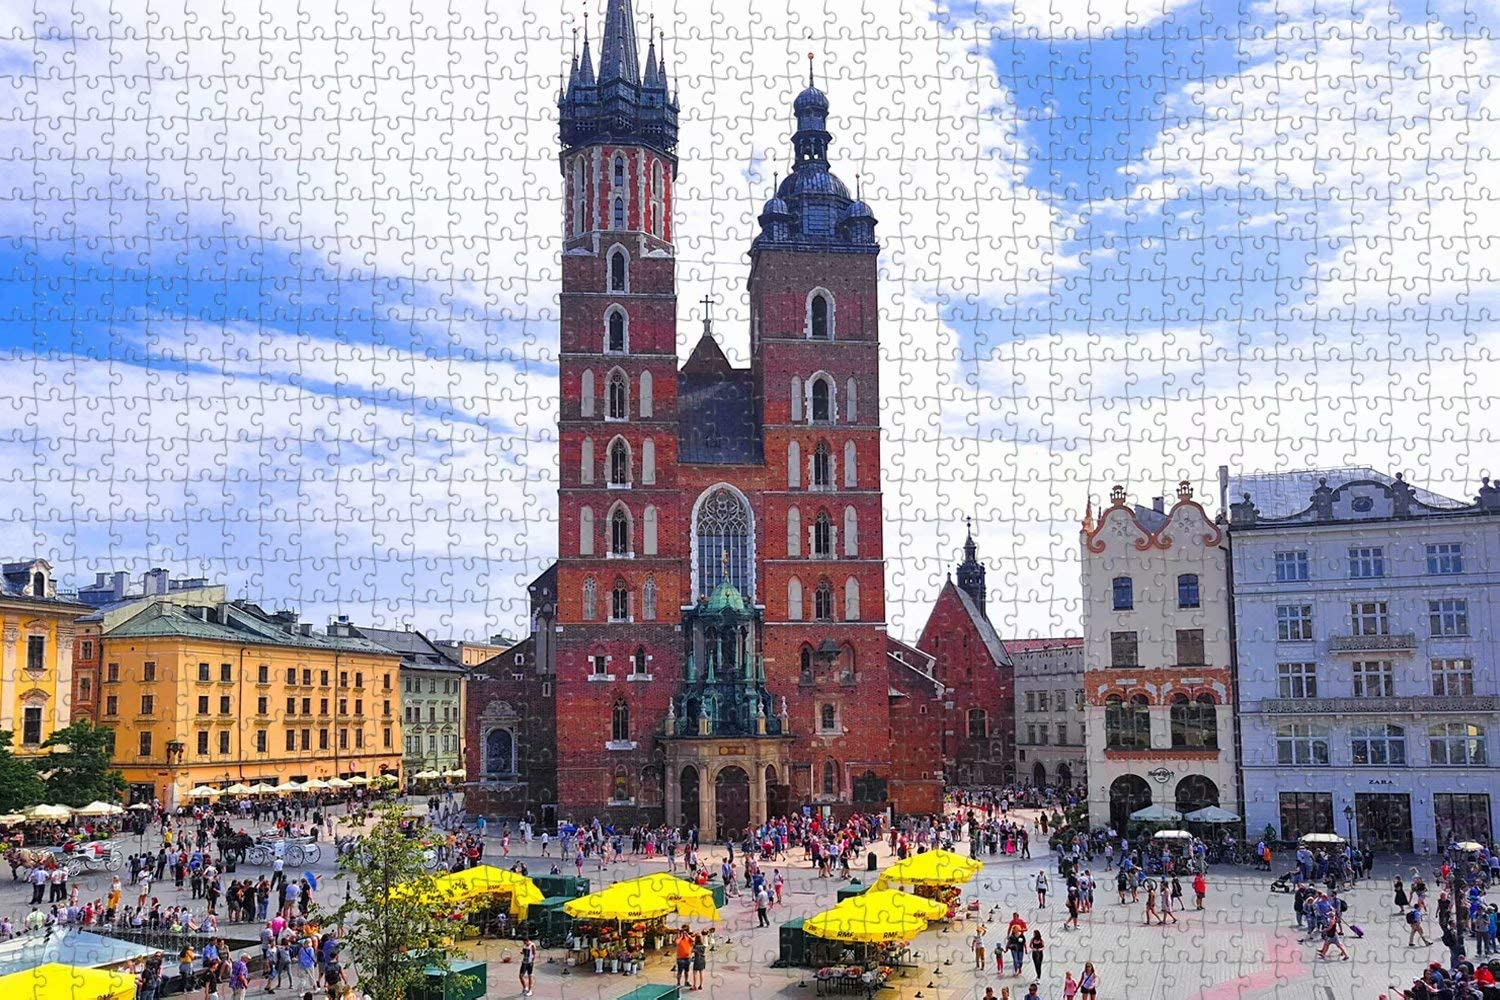 Jigsaw Puzzle for Adults Poland Krakow Puzzl Memphis Don't miss the campaign Mall St. Basilica Mary's